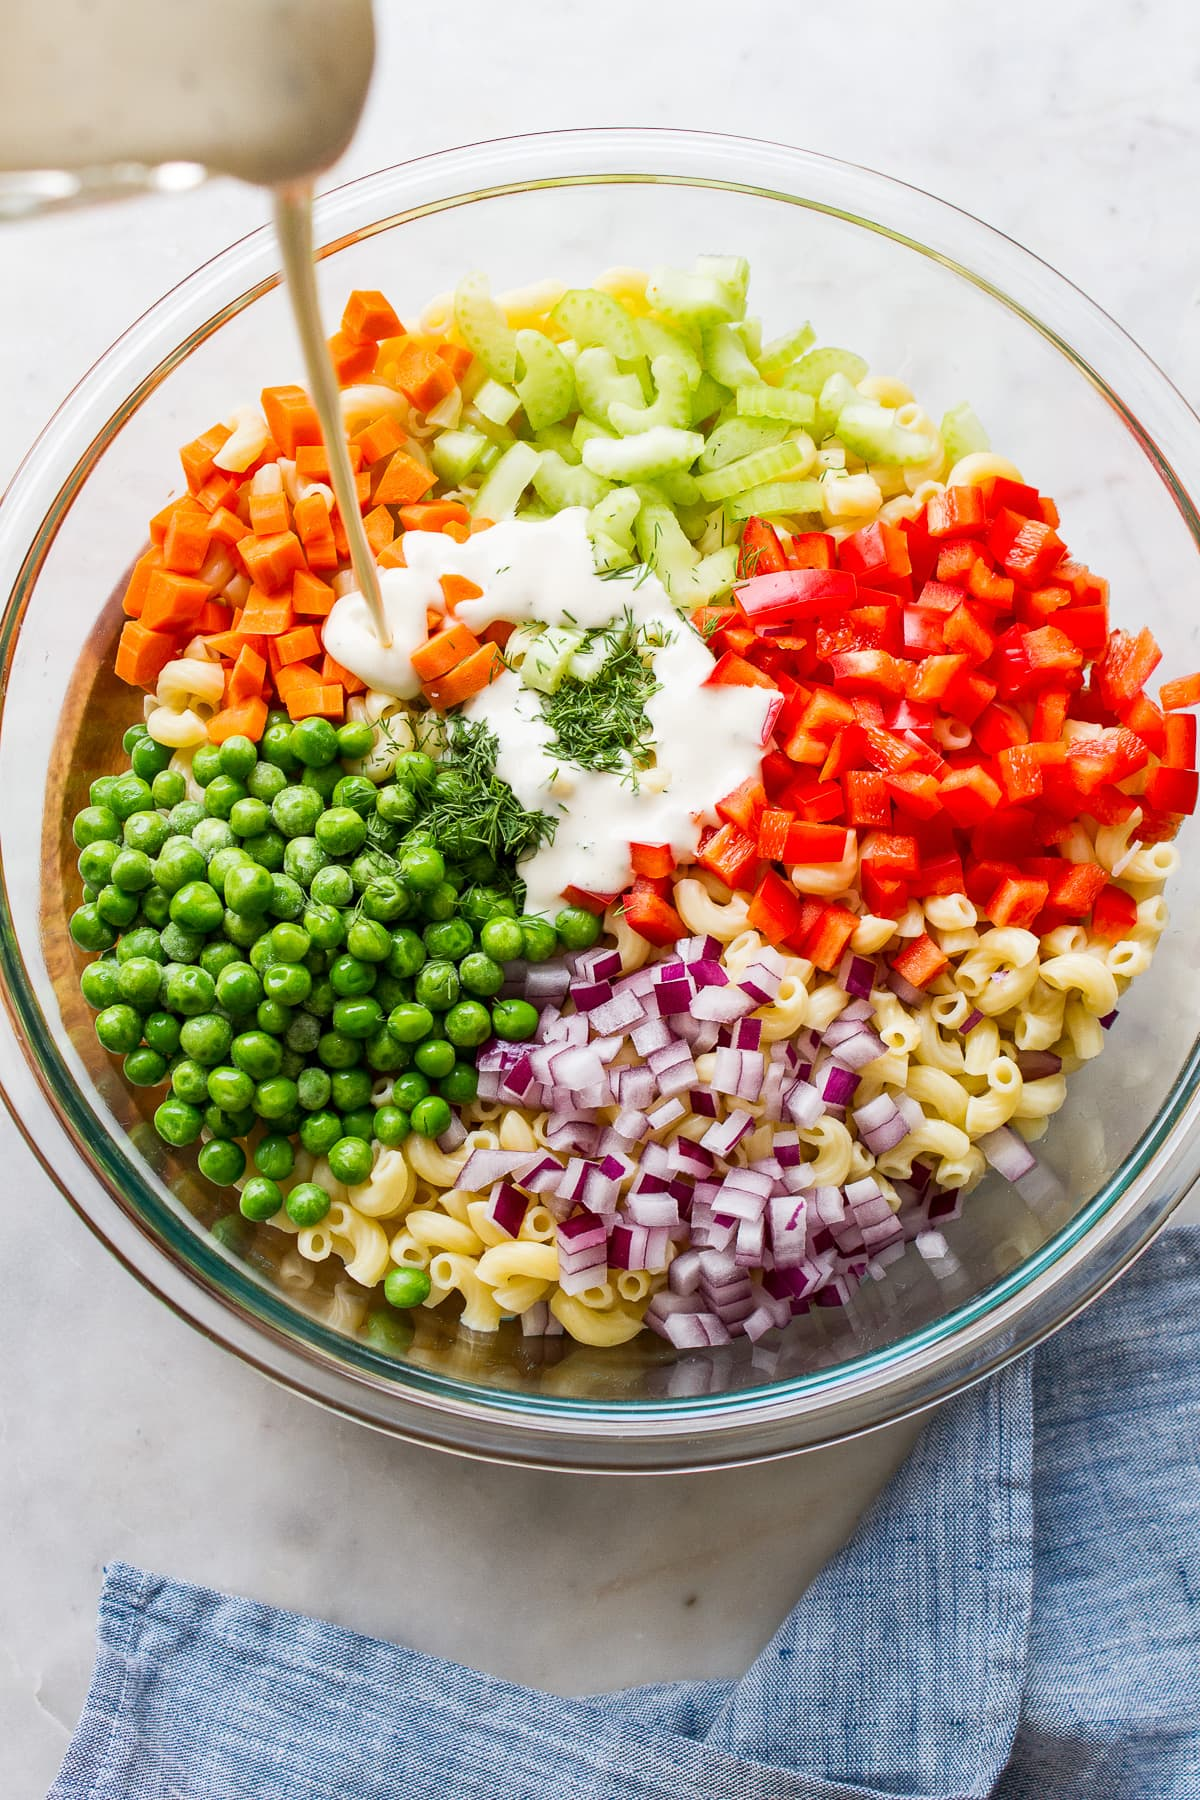 top down view of ingredients to make vegan macaroni salad in a glass bowl with creamy dressing being poured overtop.